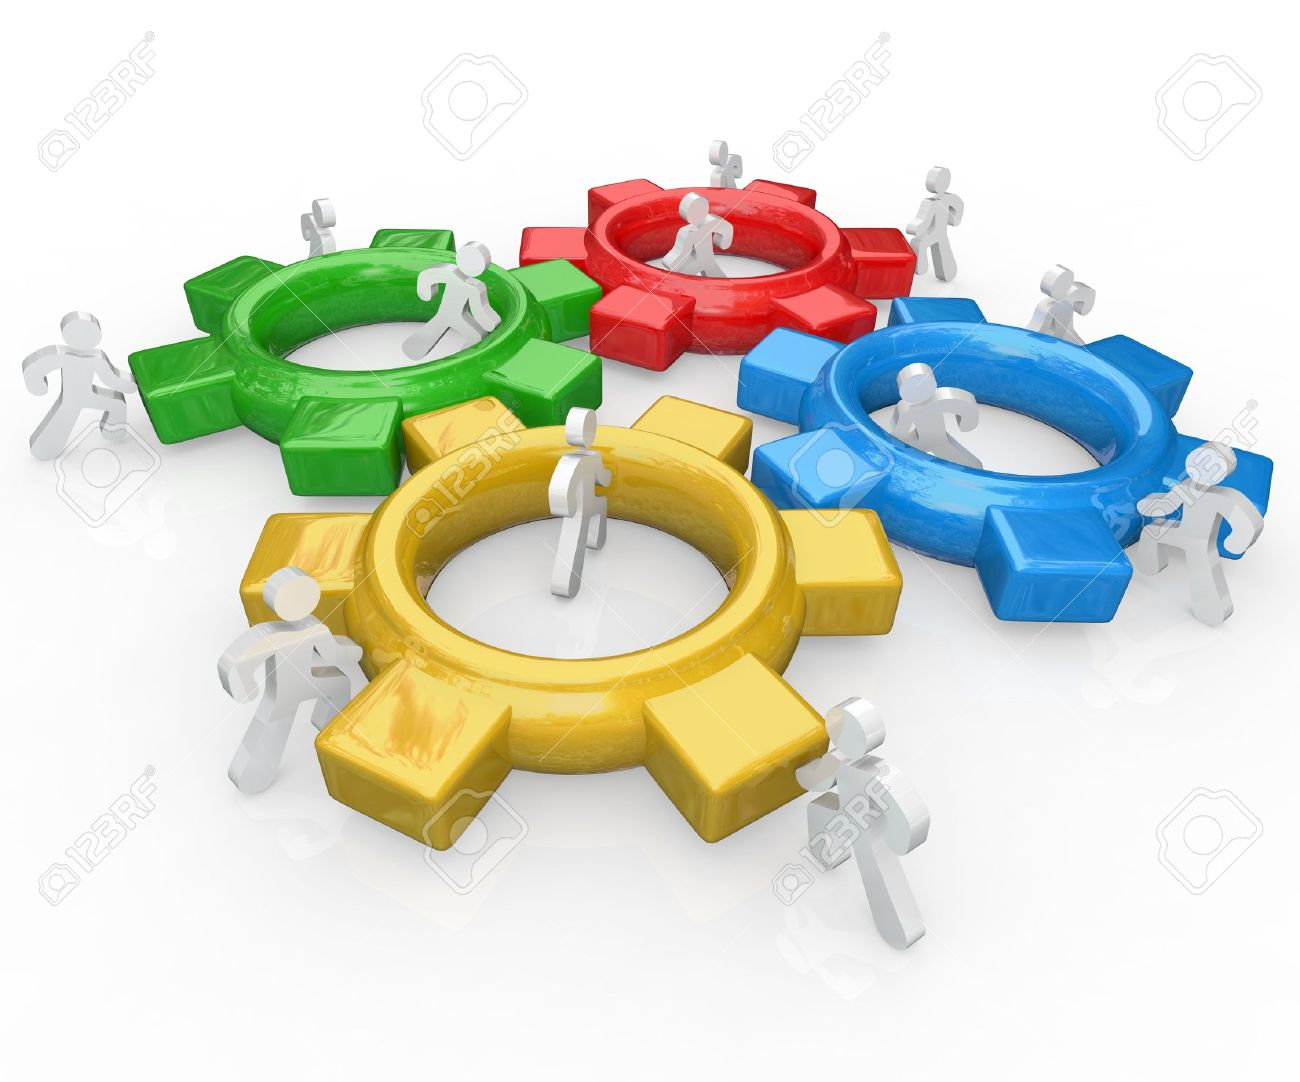 A team of illustrated people work together to push several colored gears into a functioning machine to symbolize the synergy and partnership necessary to achieve a major goal Stock Photo - 10801942